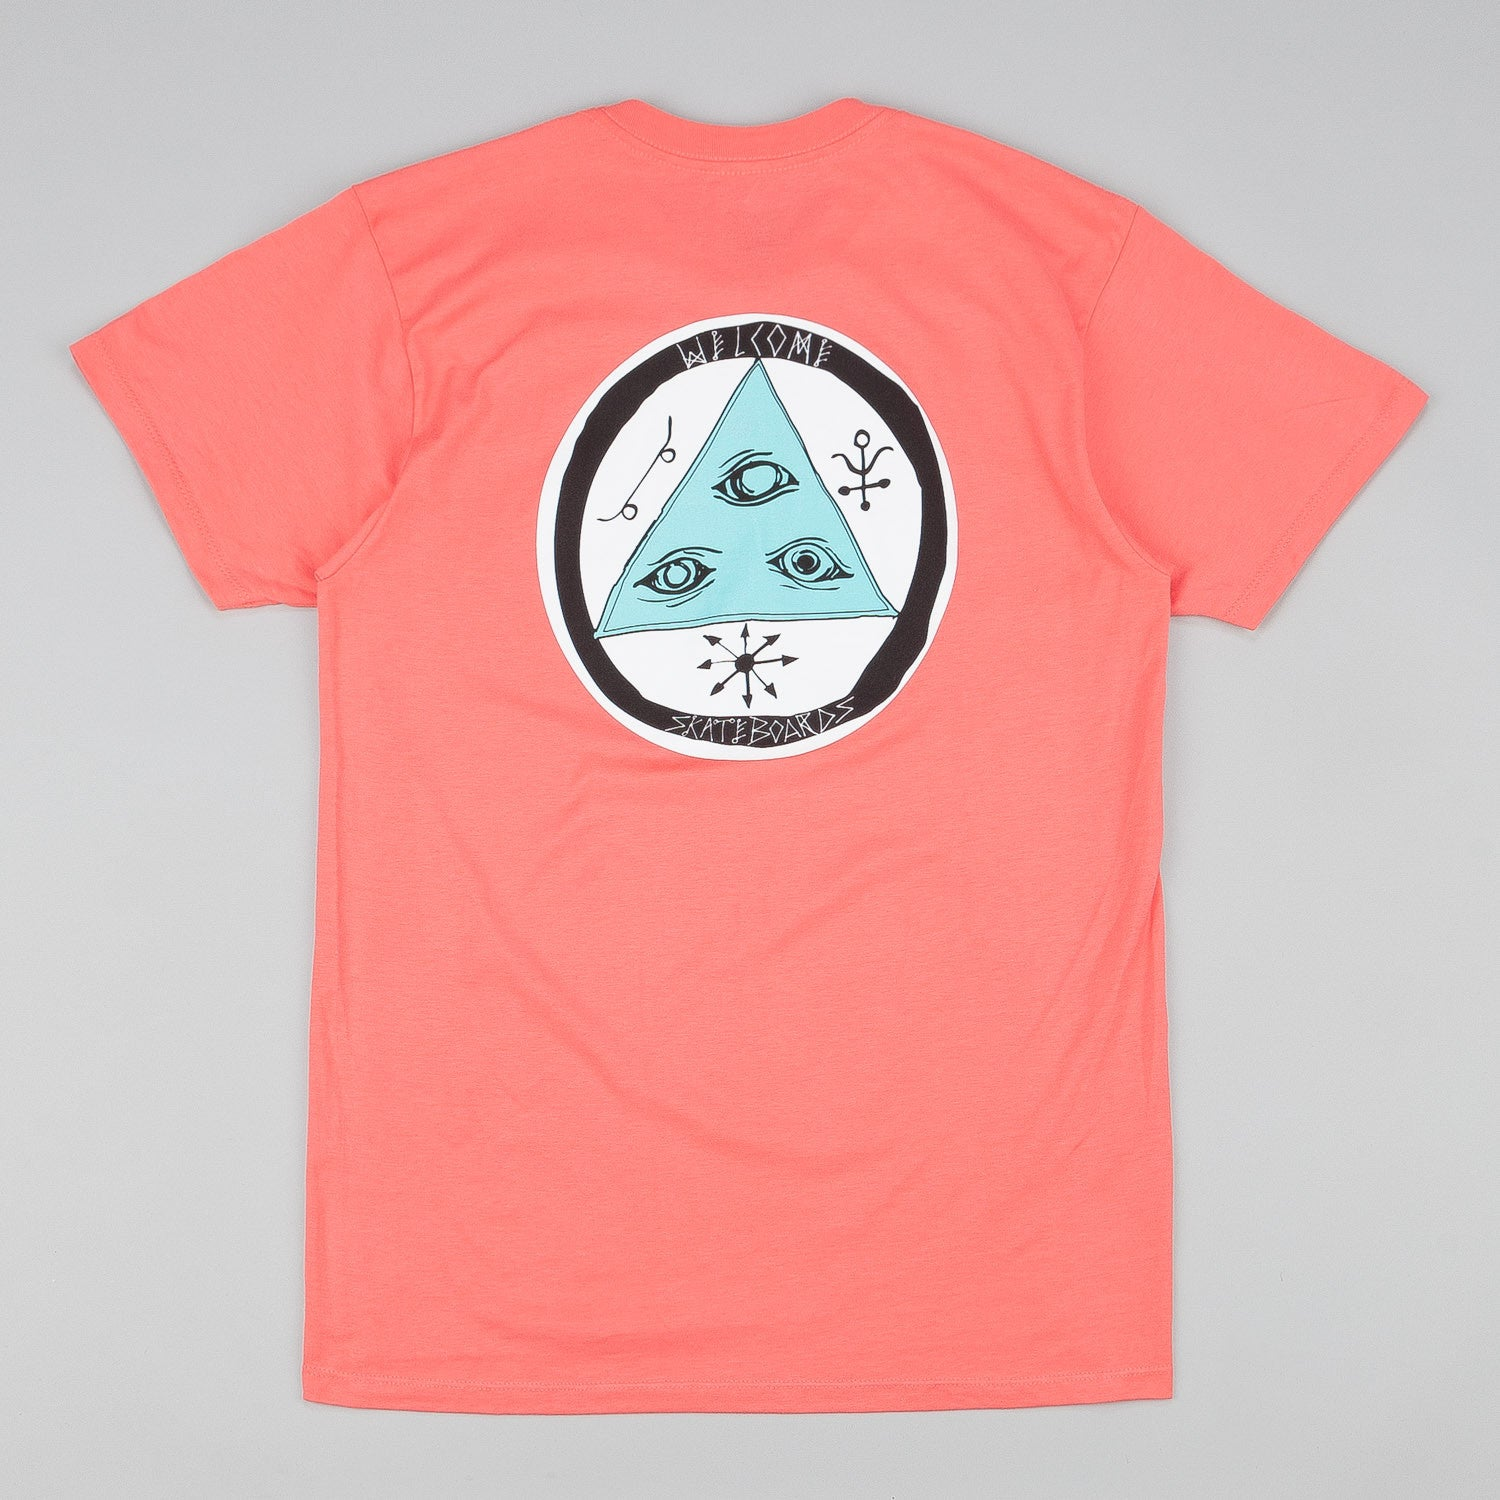 Welcome Talisman Tri-Colour T-Shirt - Coral / Teal / White